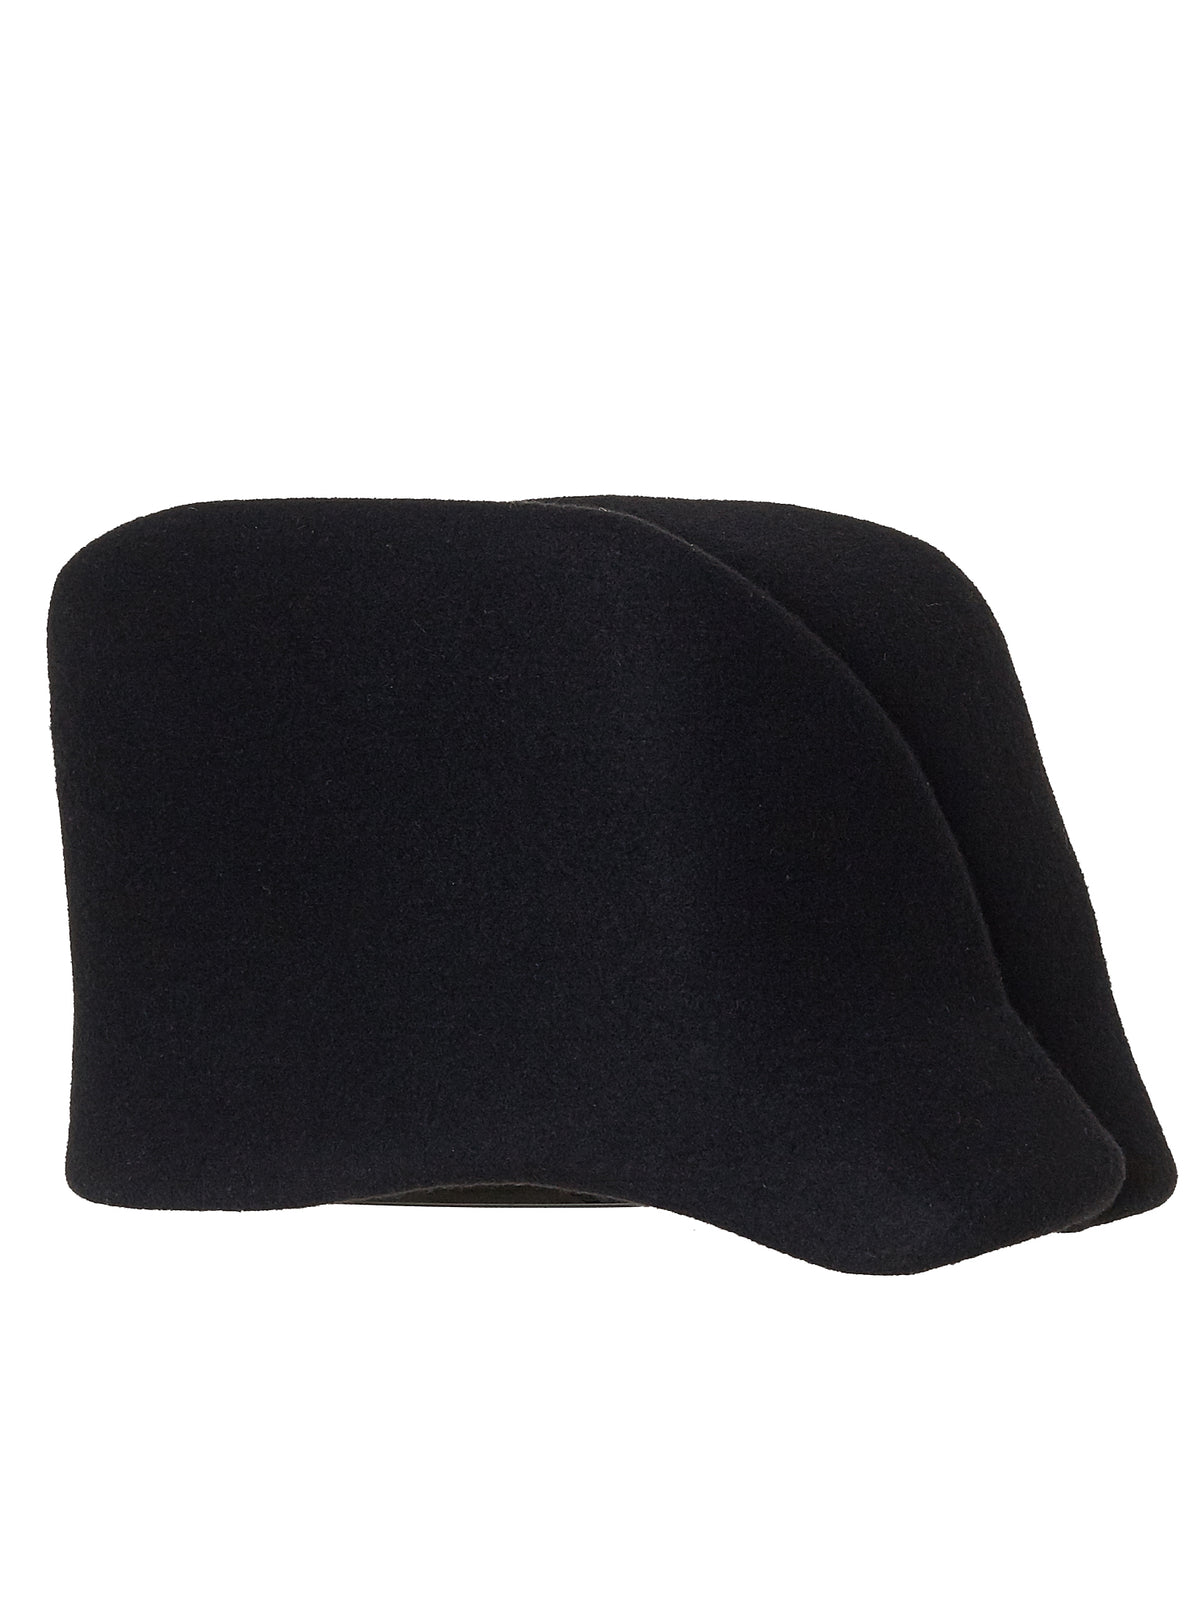 'Warped' Crown Cap (015-BLACK)